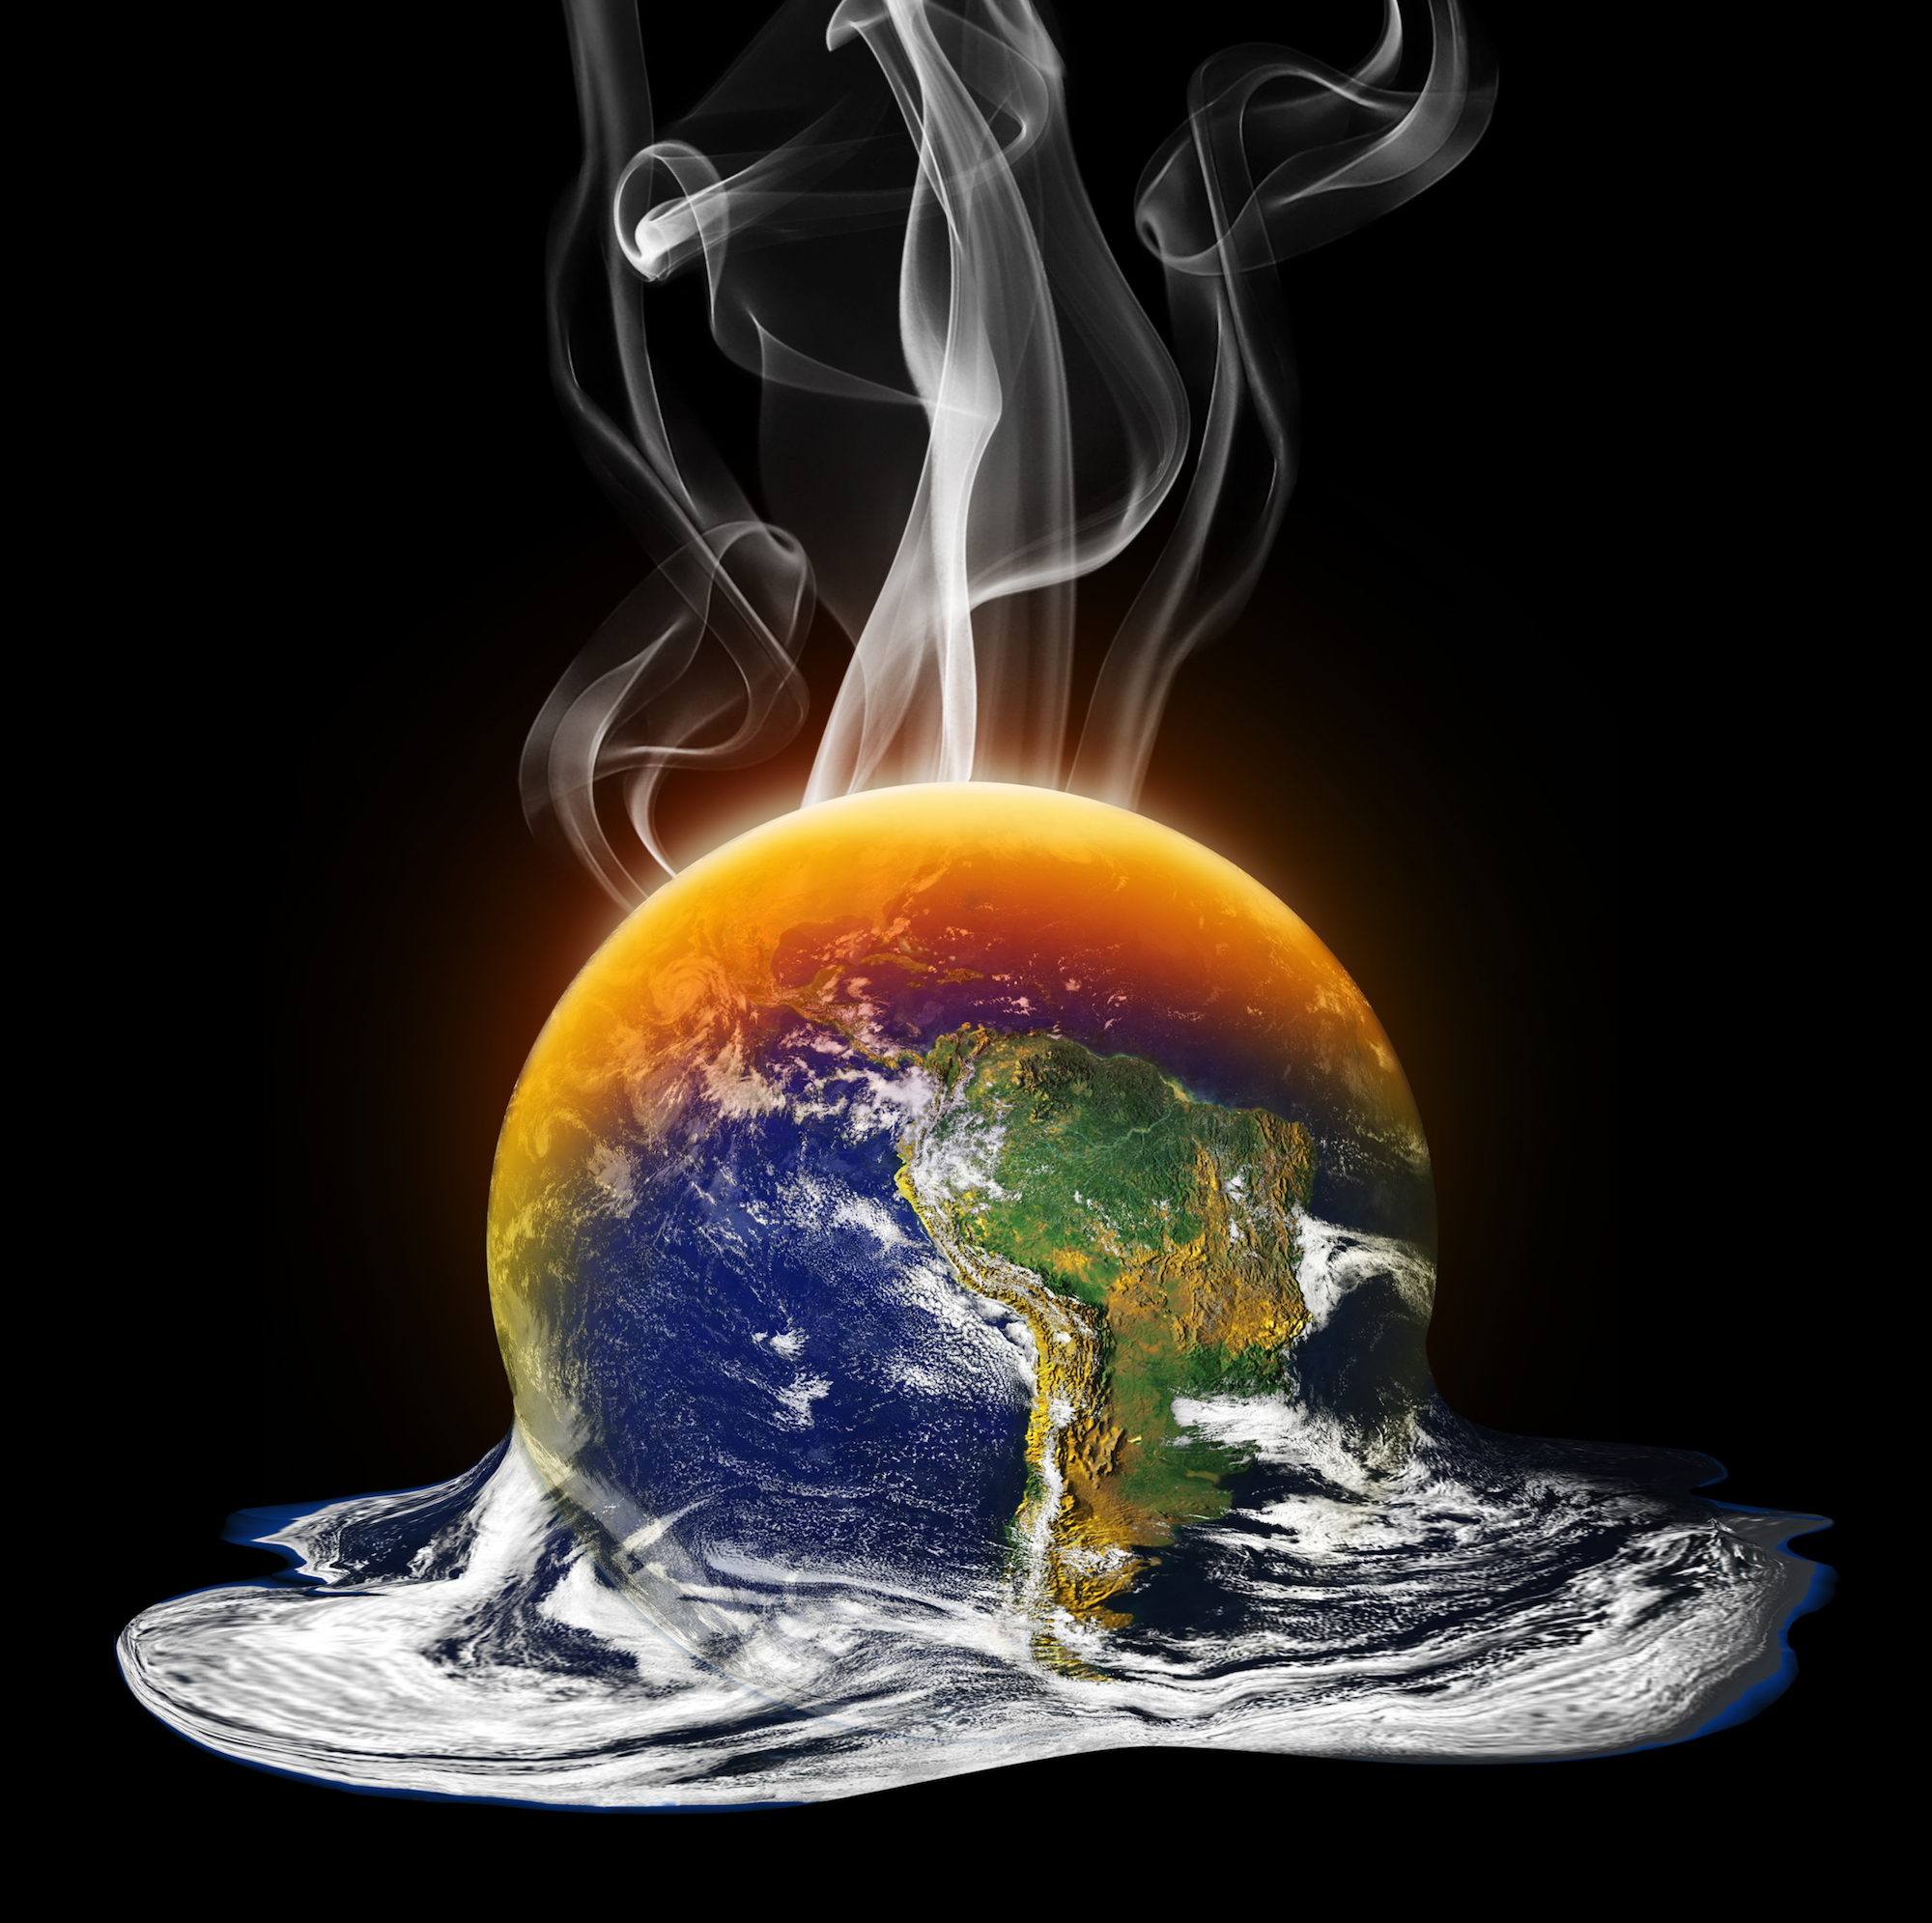 Climate experts have determined that artificially cooling the planet in one hemisphere would likely have a damaging impact on the other.